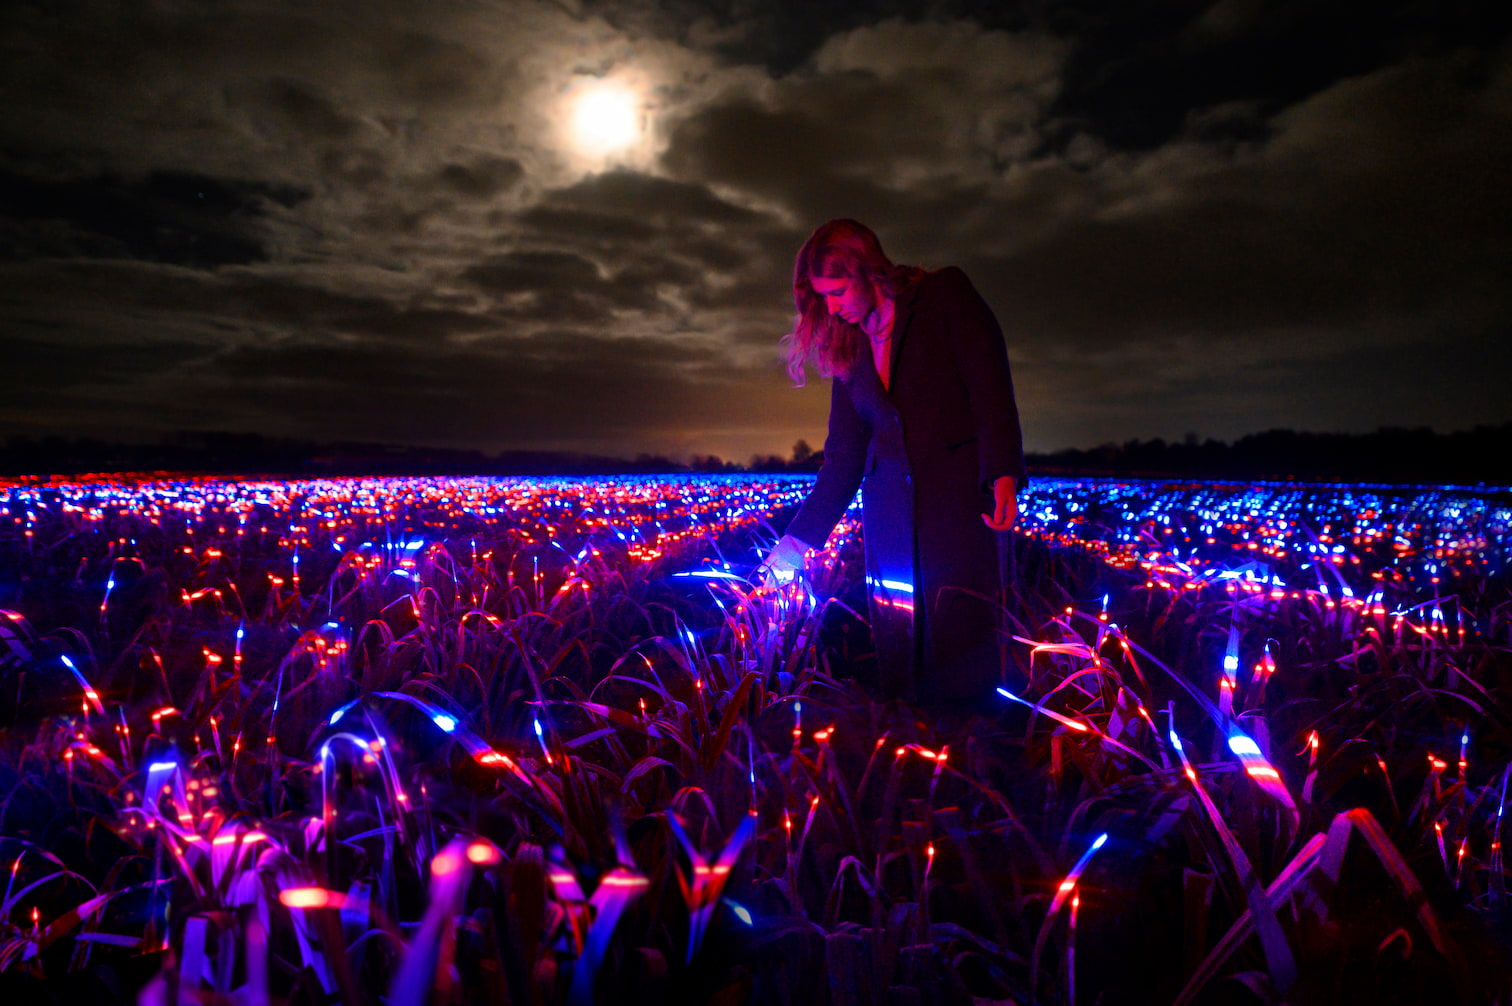 A woman explores Studio Roosegaarde's Grow by moonlight, brushing her hand against the crops illuminated with red blue and ultraviolet light